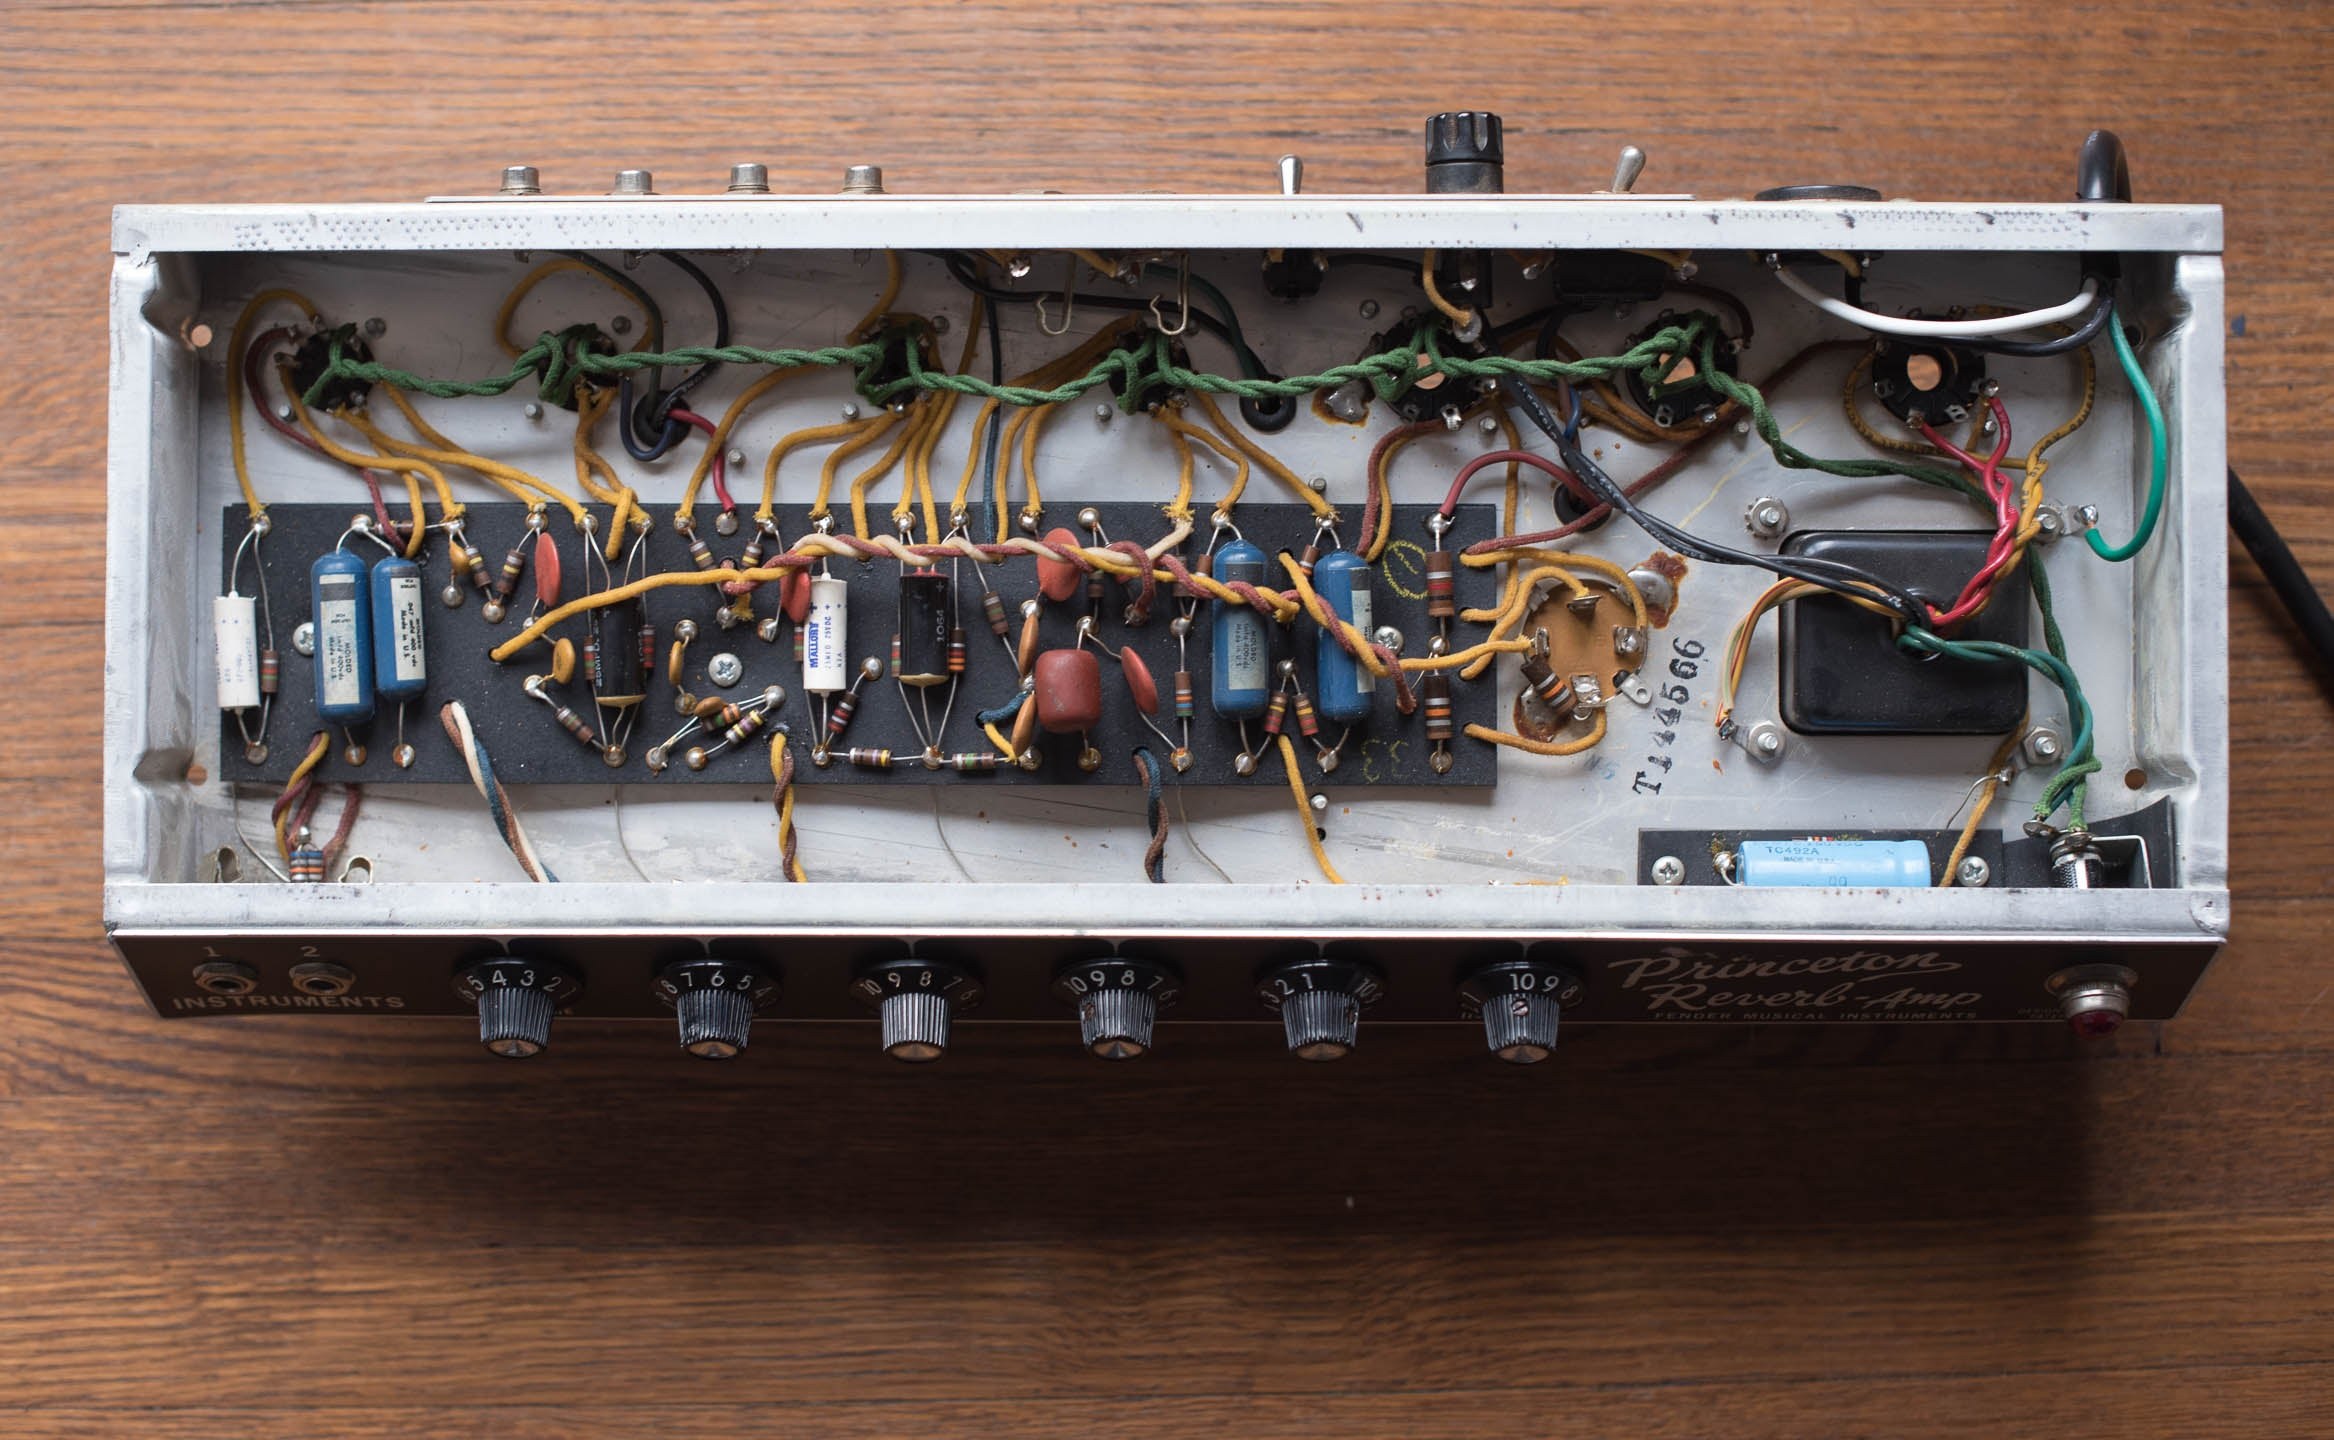 chassis, circuit board, 1966 Fender Princeton Reverb